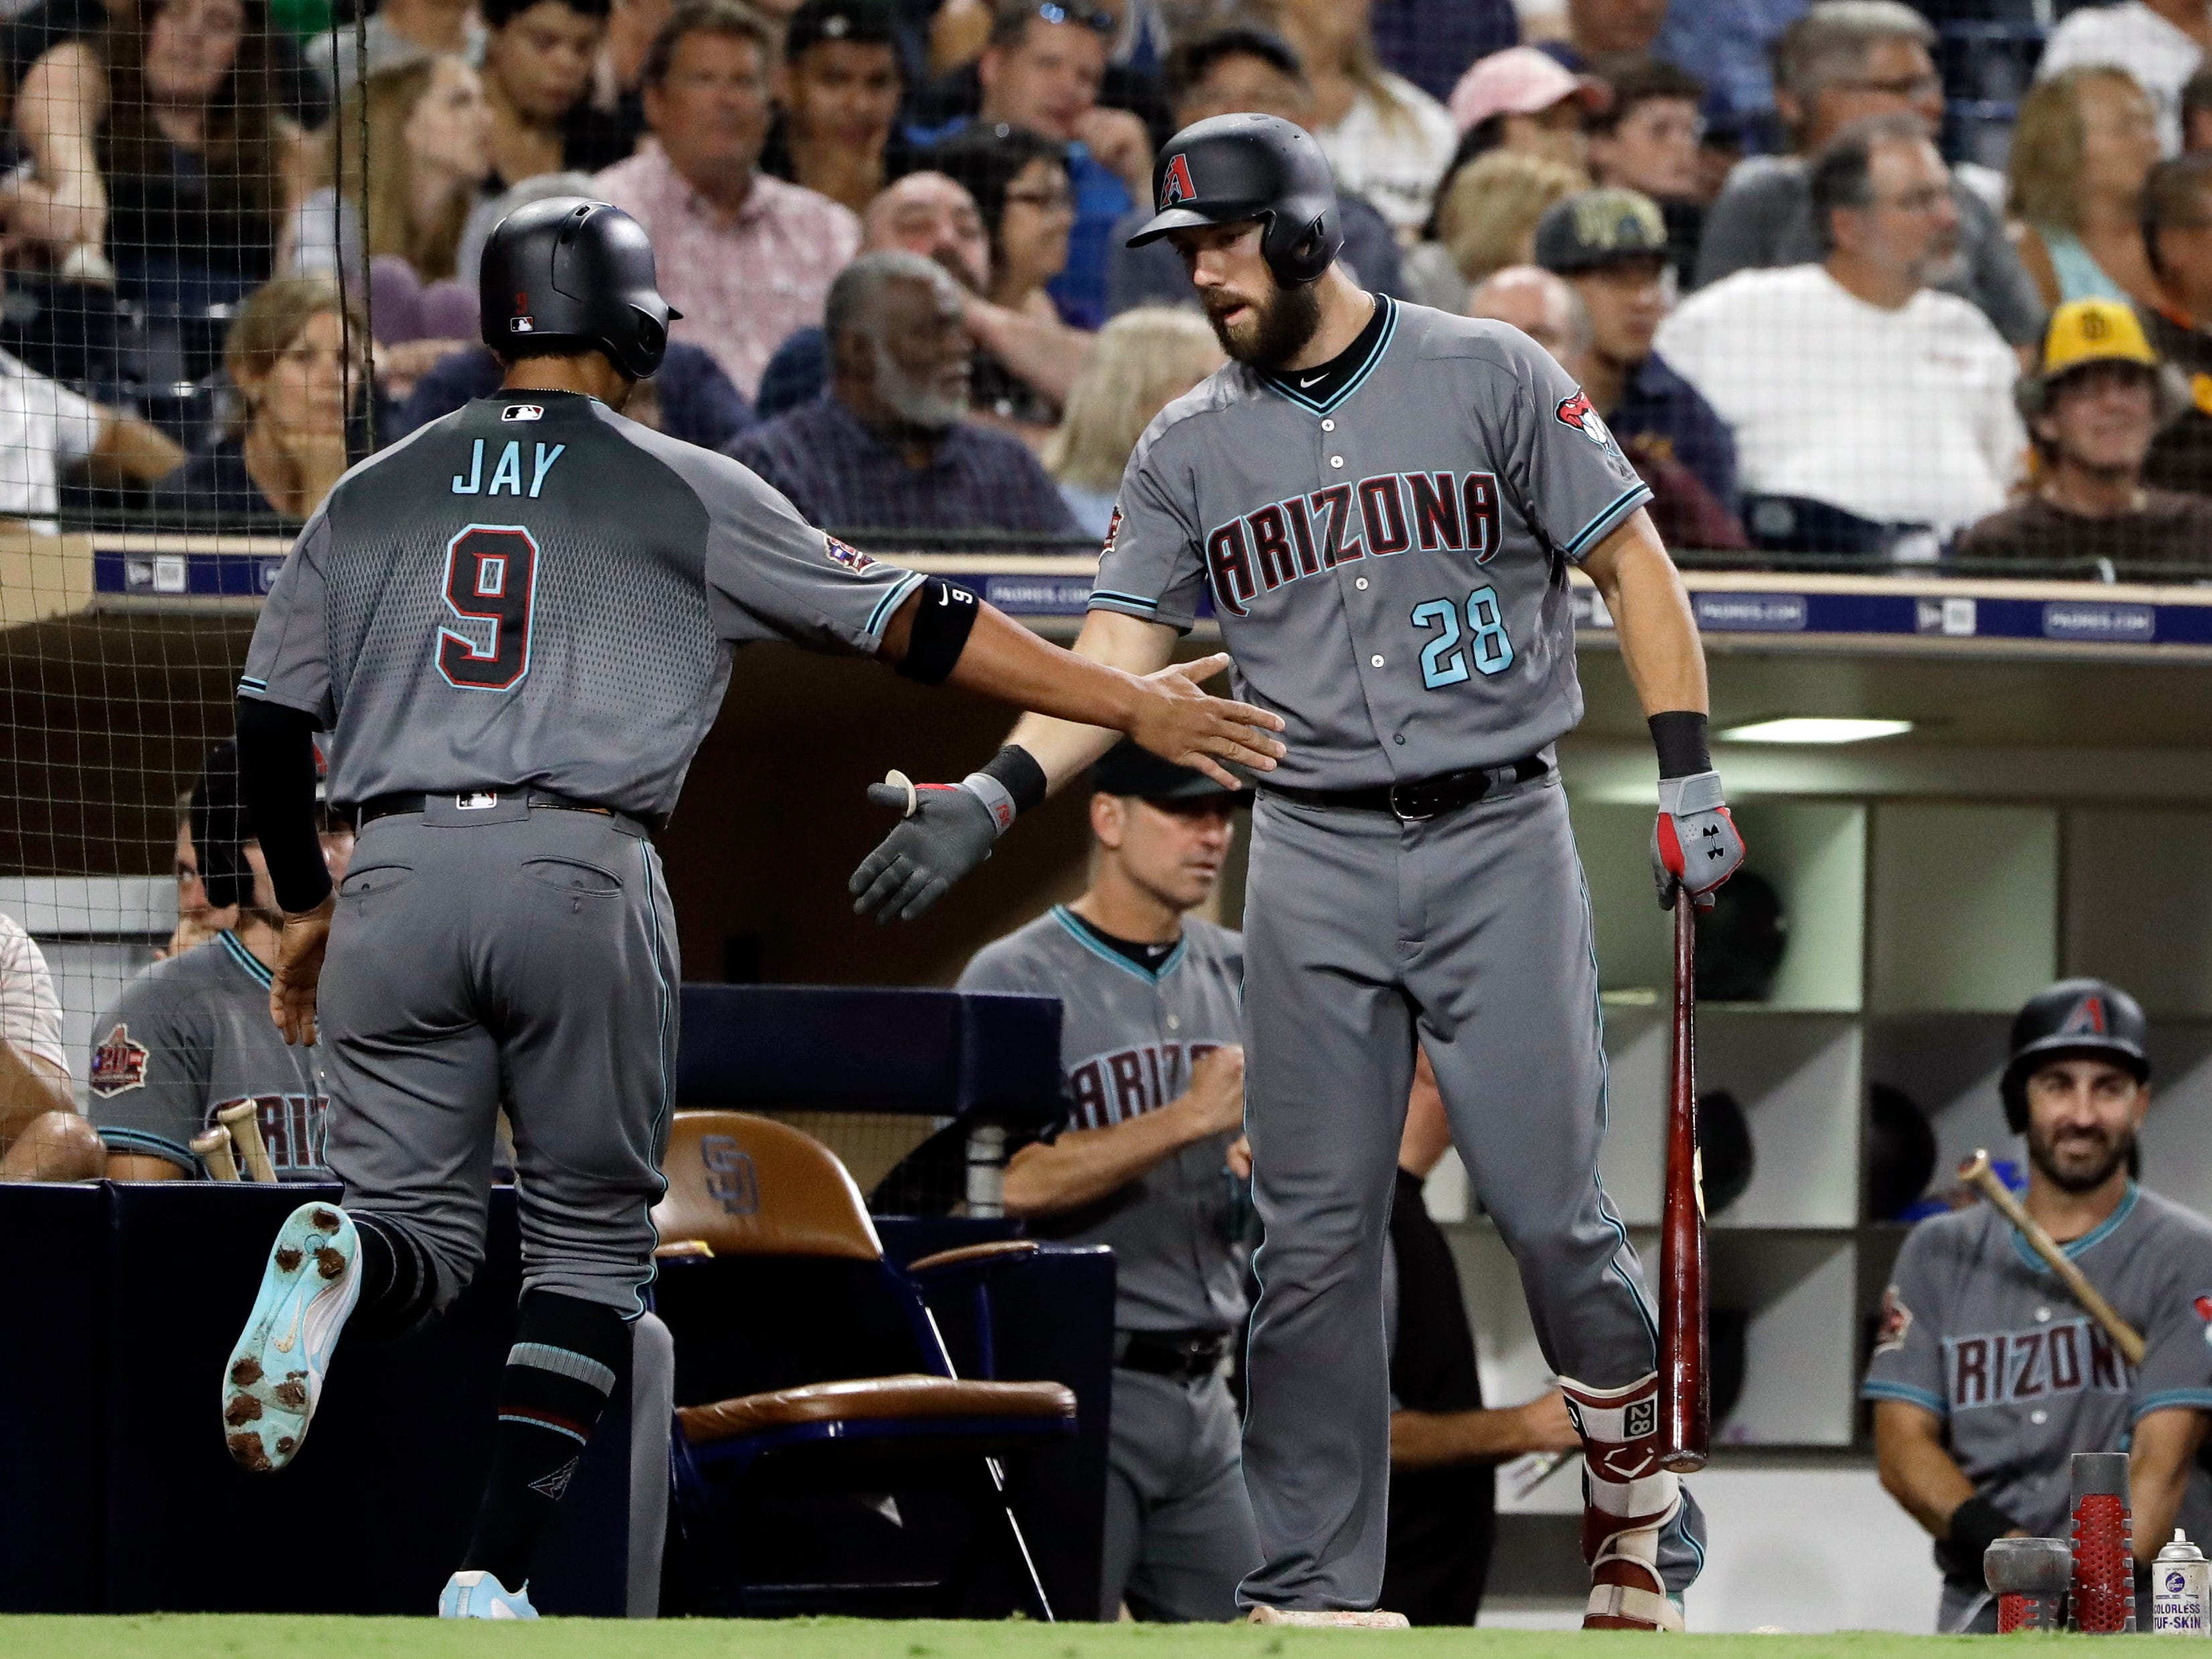 Arizona Diamondbacks' Jon Jay (9) is greeted by Steven Souza Jr. after scoring during the fourth inning of a baseball game against the San Diego Padres on Friday, Aug. 17, 2018, in San Diego.